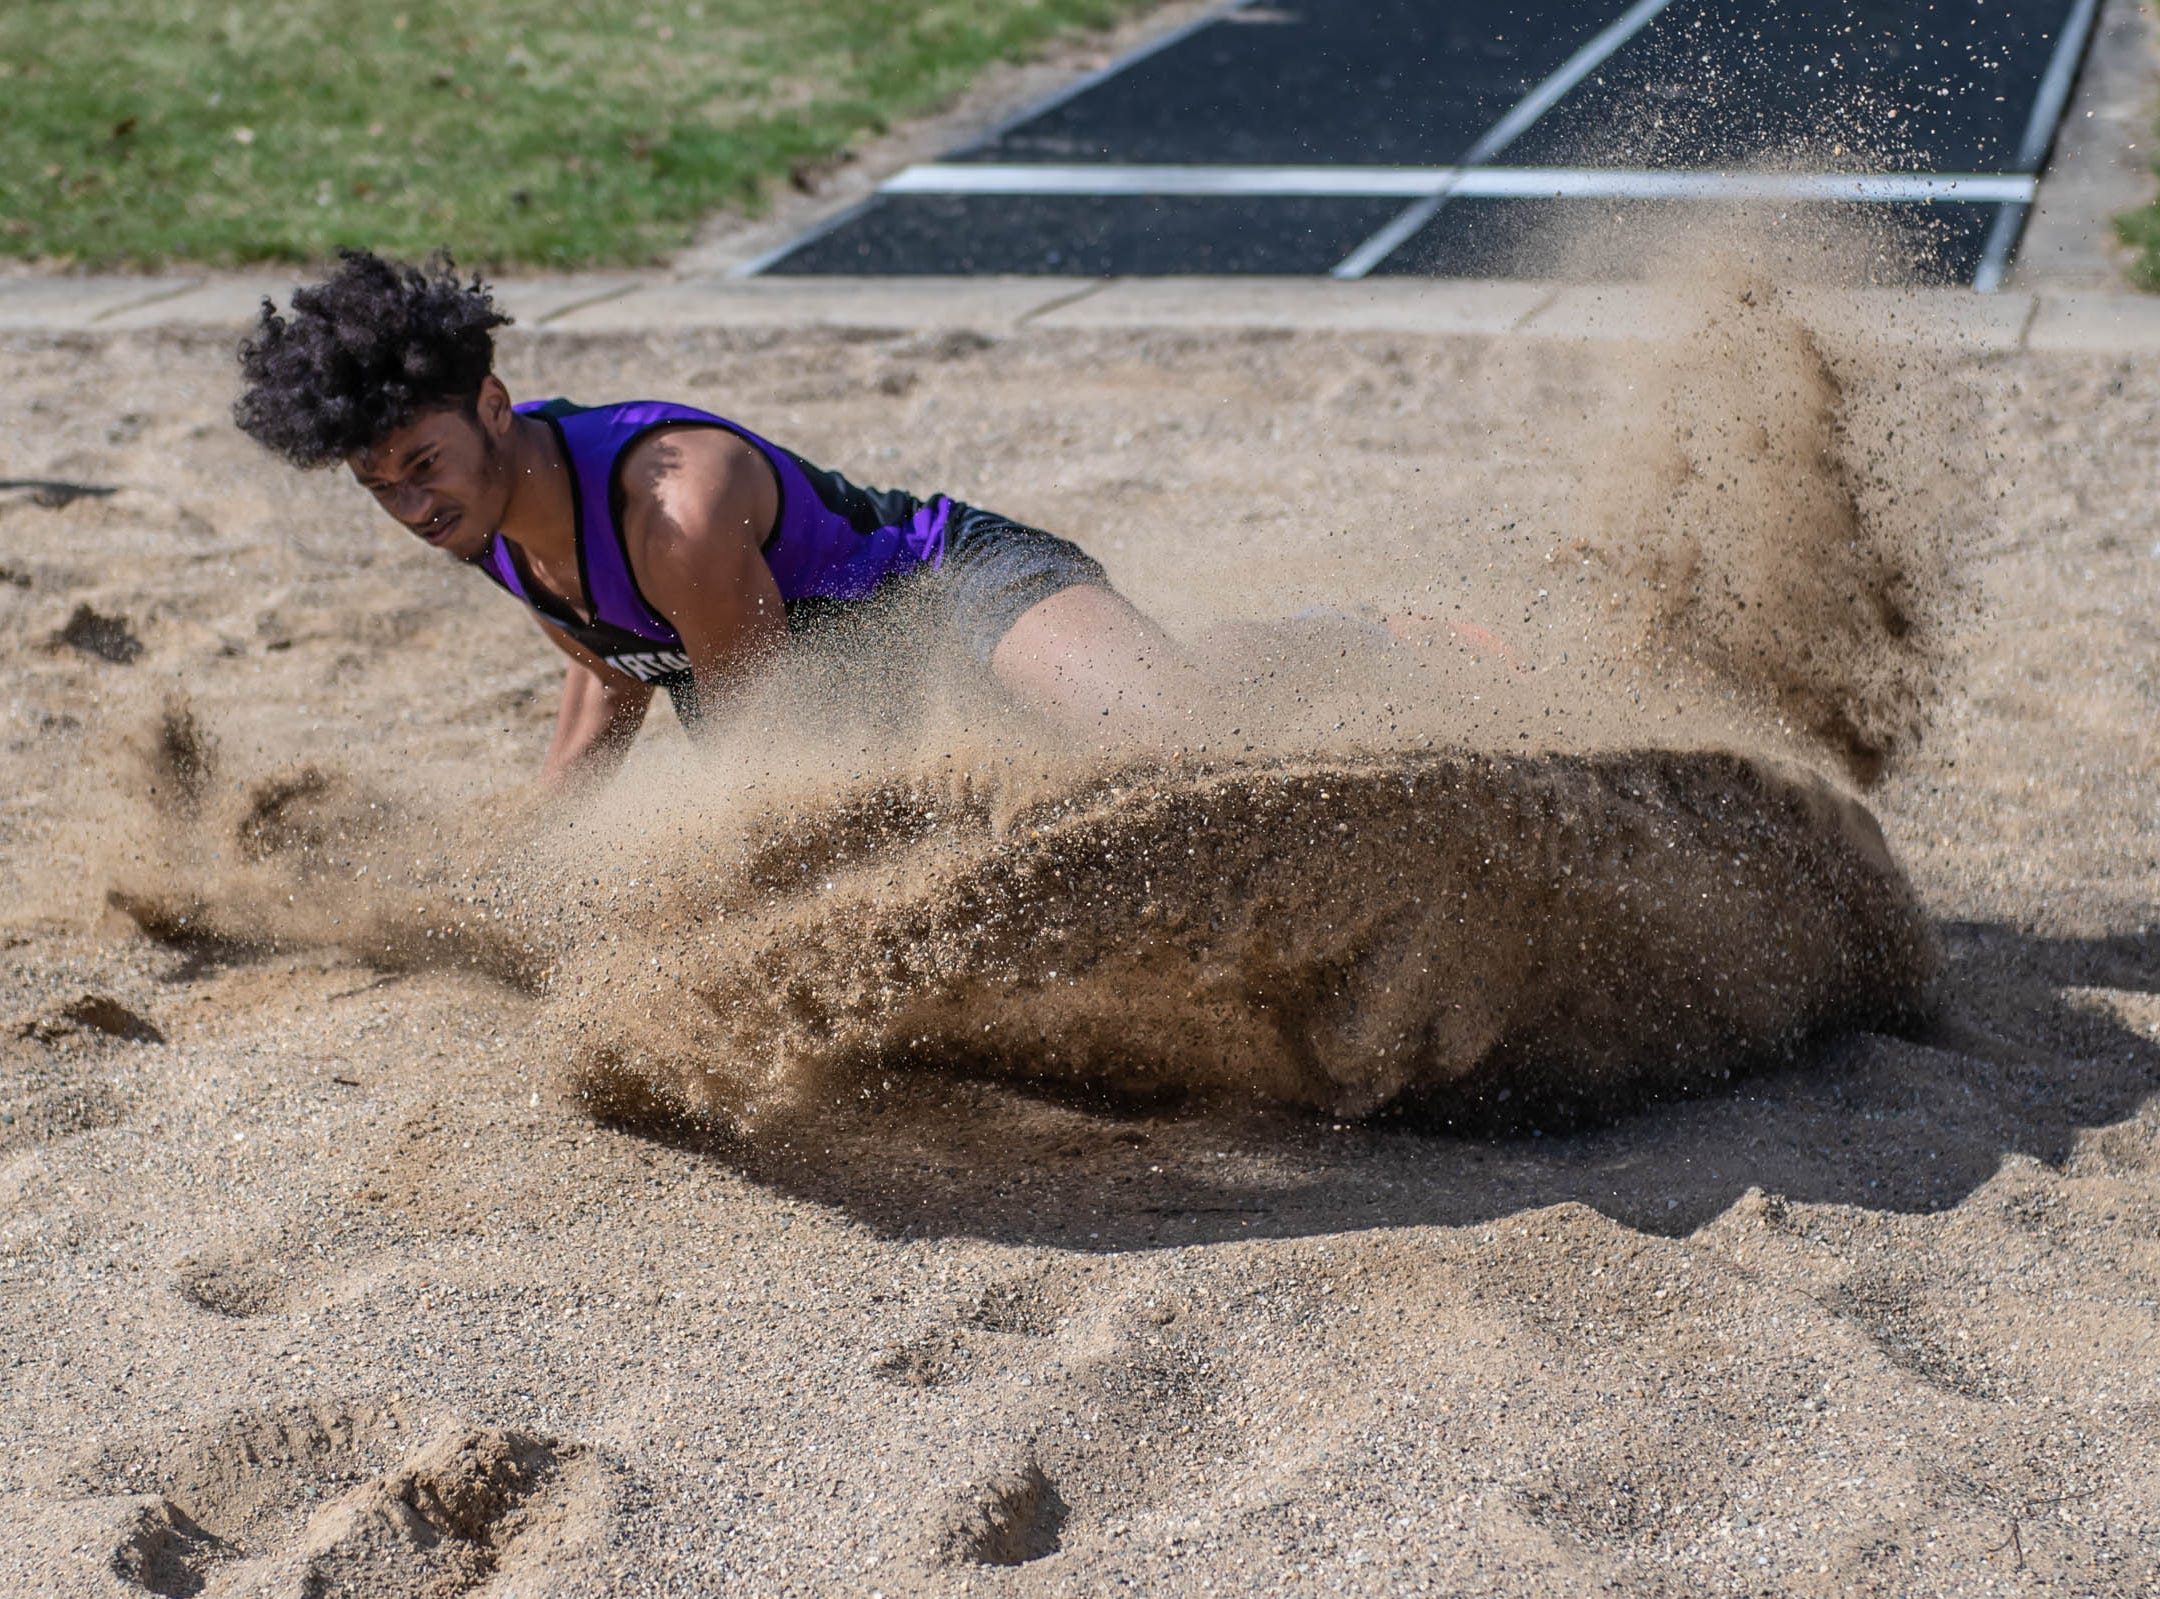 Lakeview's  Landon Bridges competes in the long jump at Lakeview High School during a dual meet held on 4/9/19.